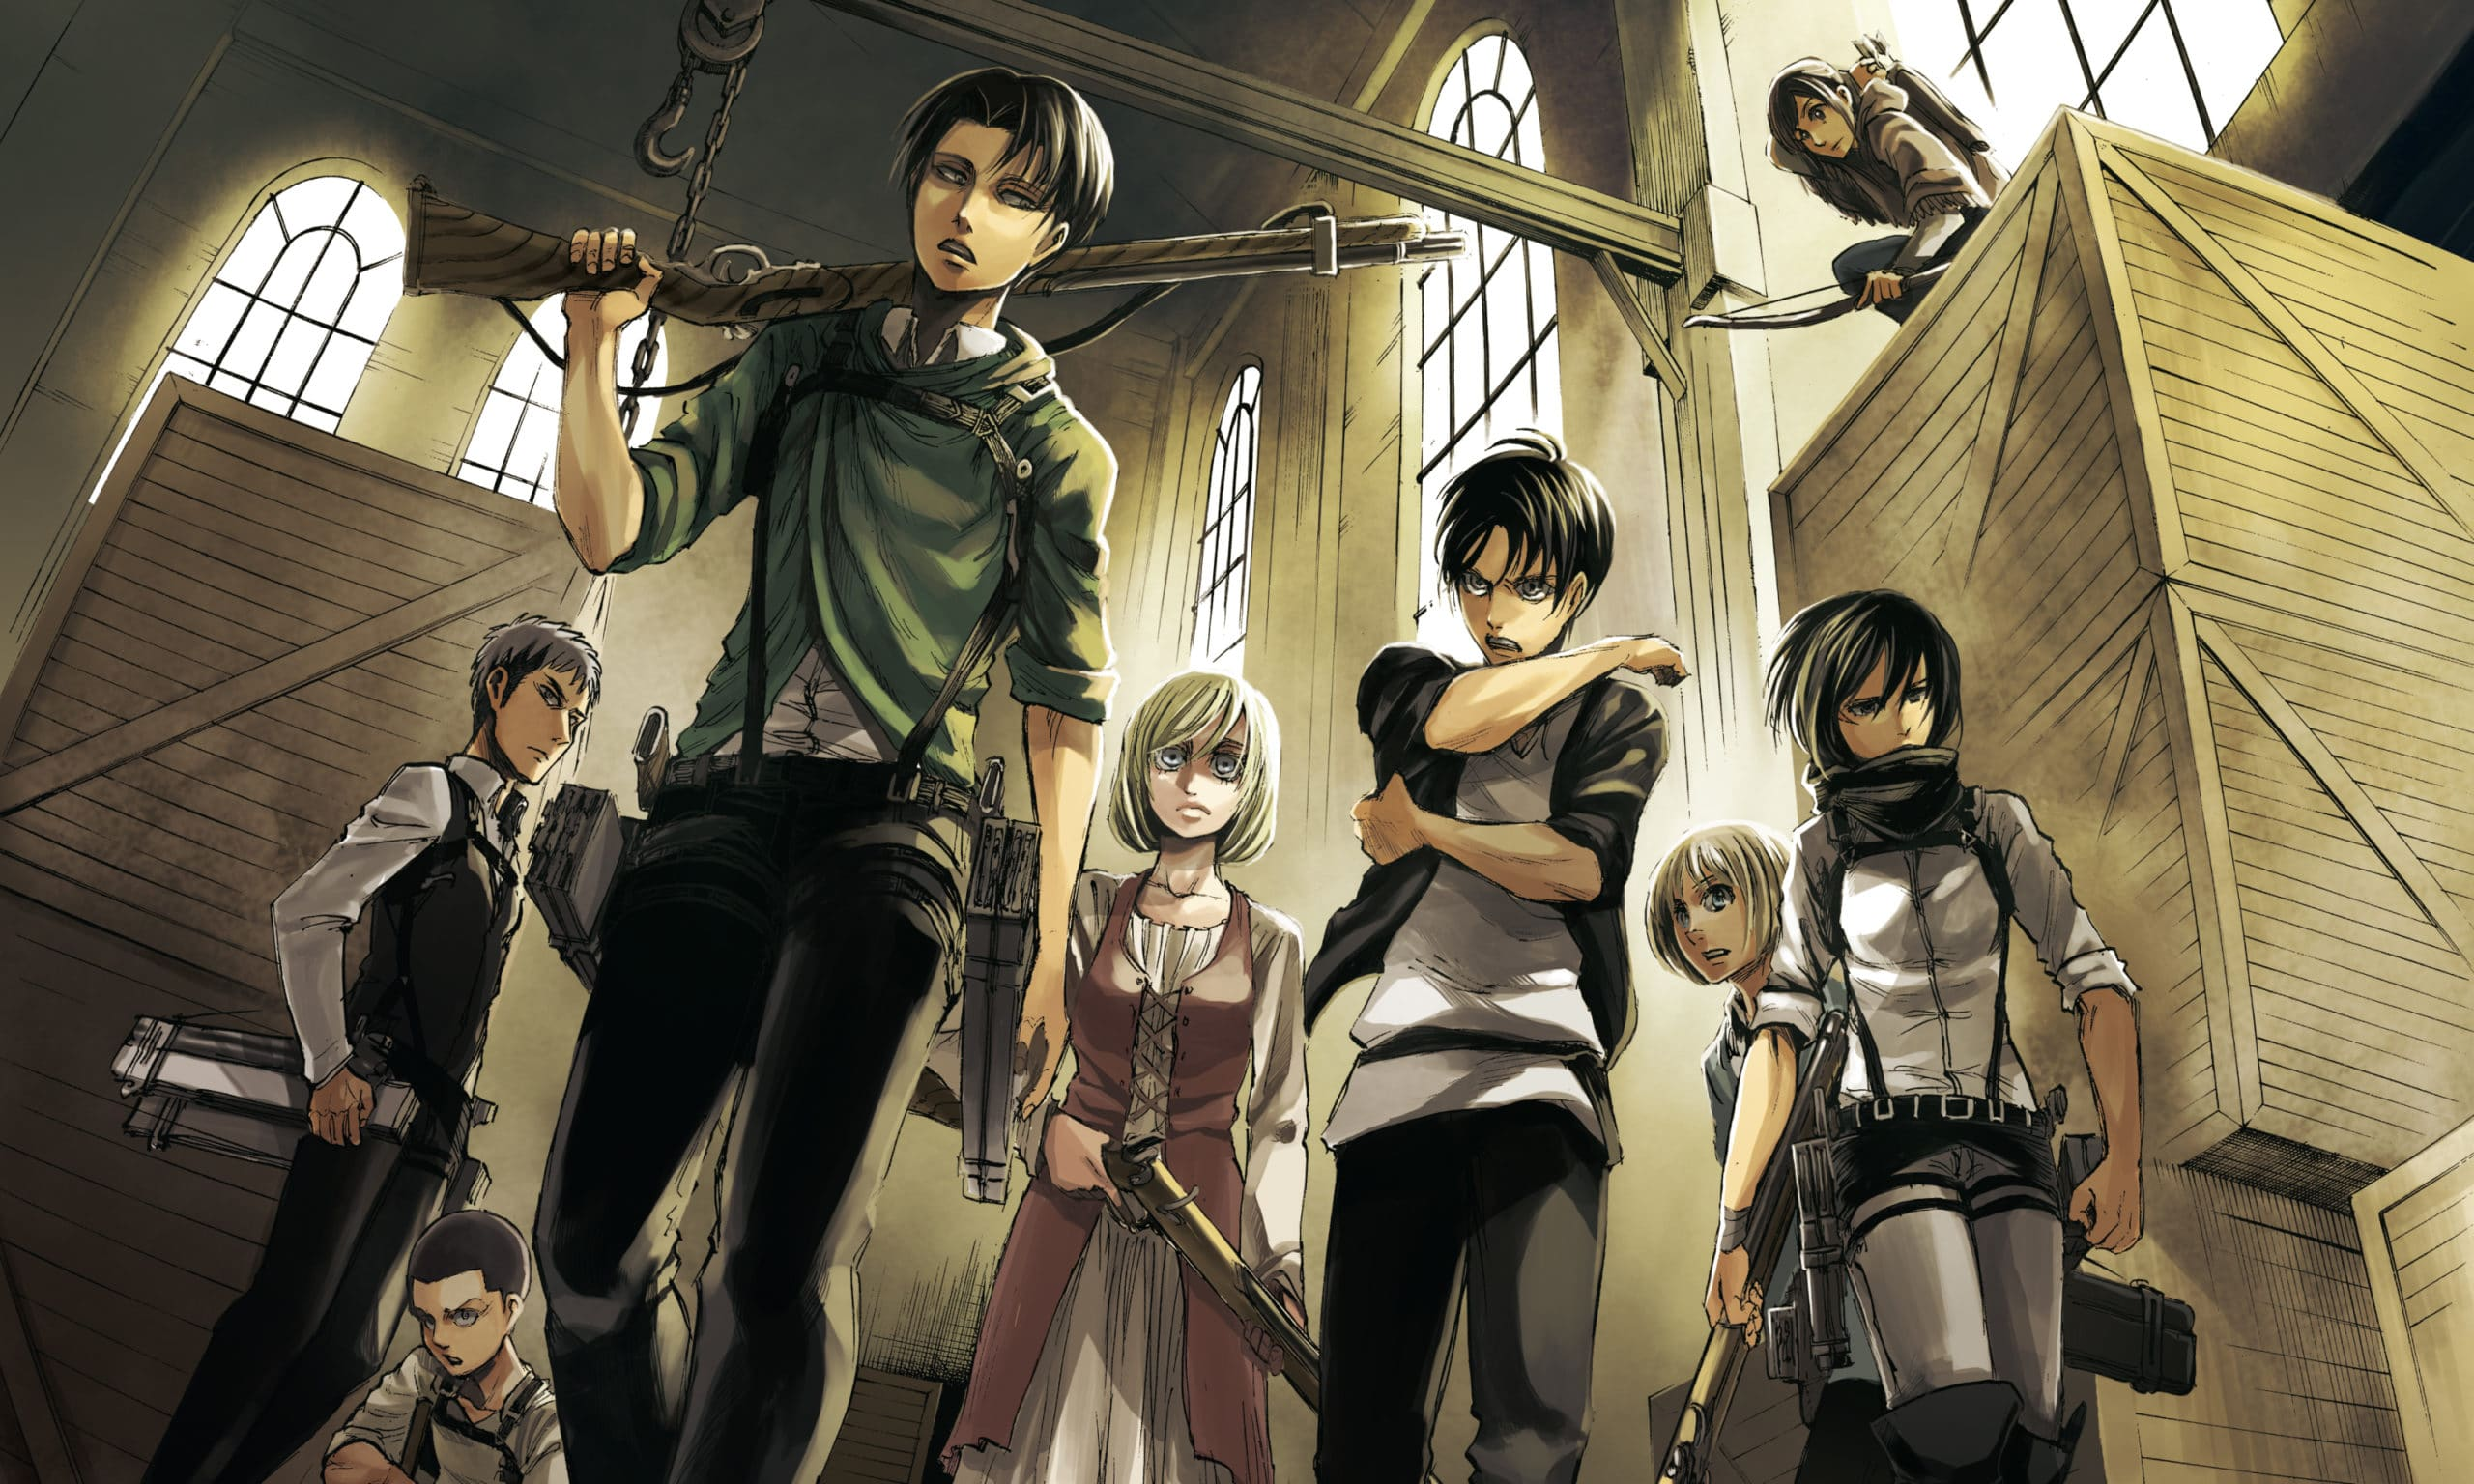 Read up to Attack on Titan volume 22 FREE